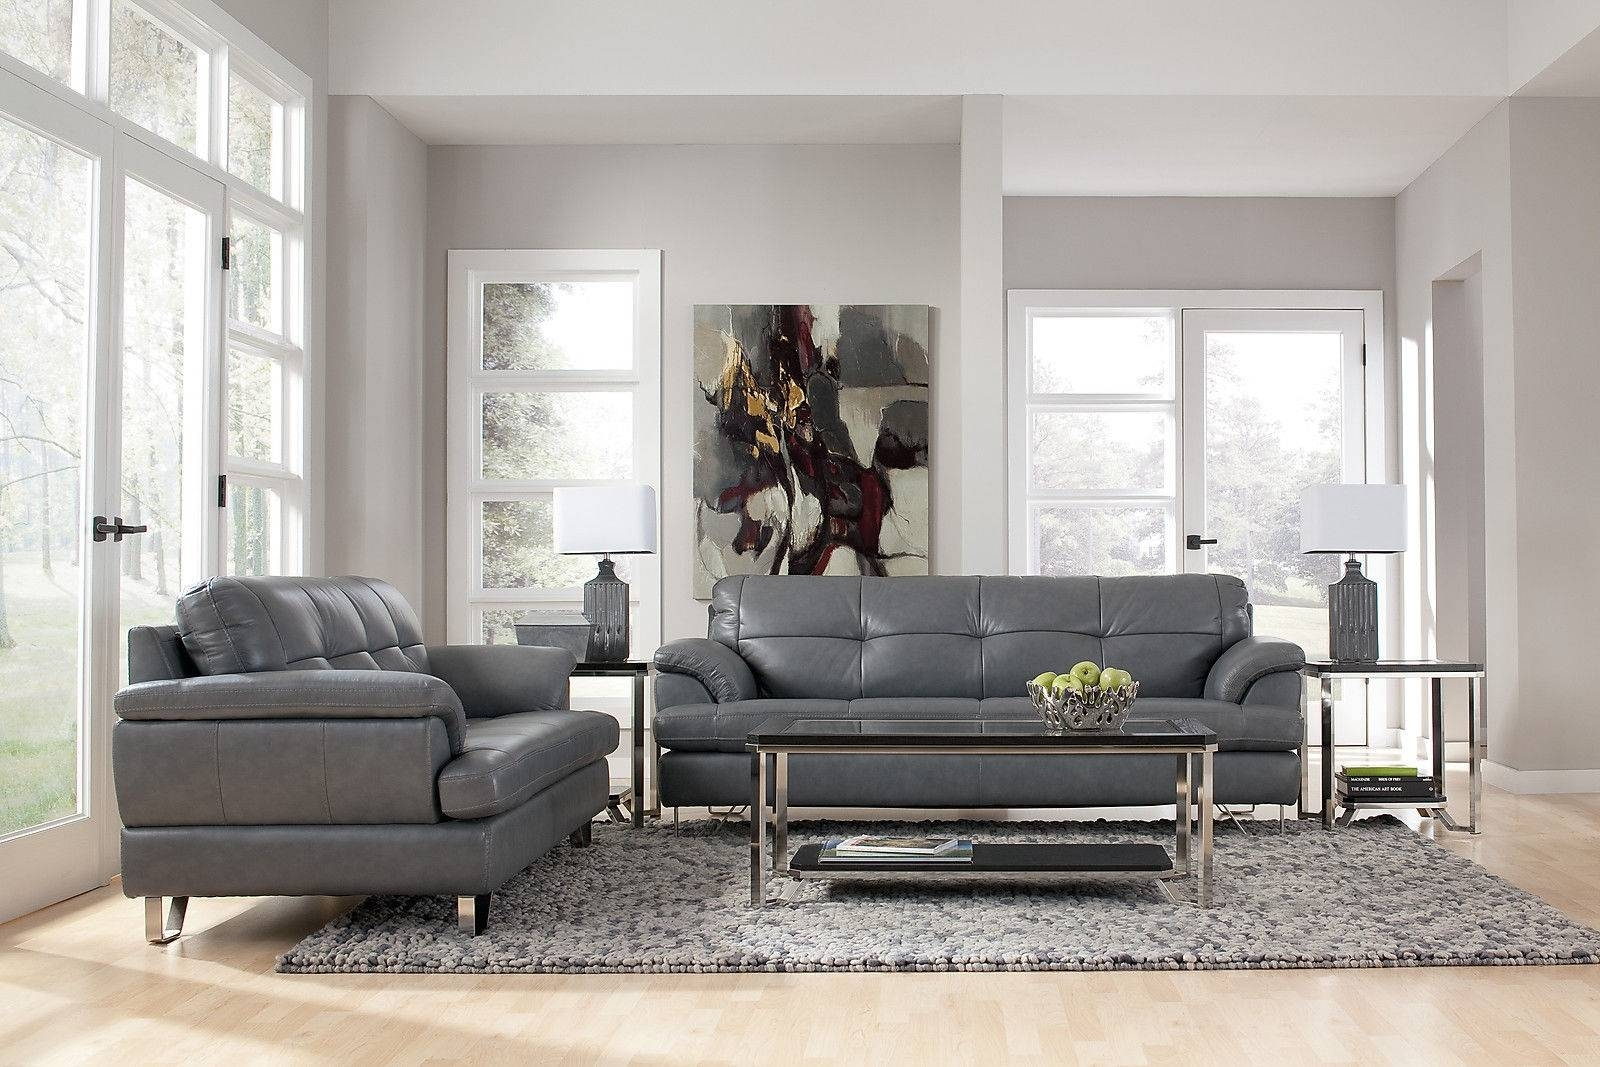 Grey Leather Furniture, Charcoal Leather Sofa Grey Leather Sofas regarding Charcoal Grey Leather Sofas (Image 11 of 15)